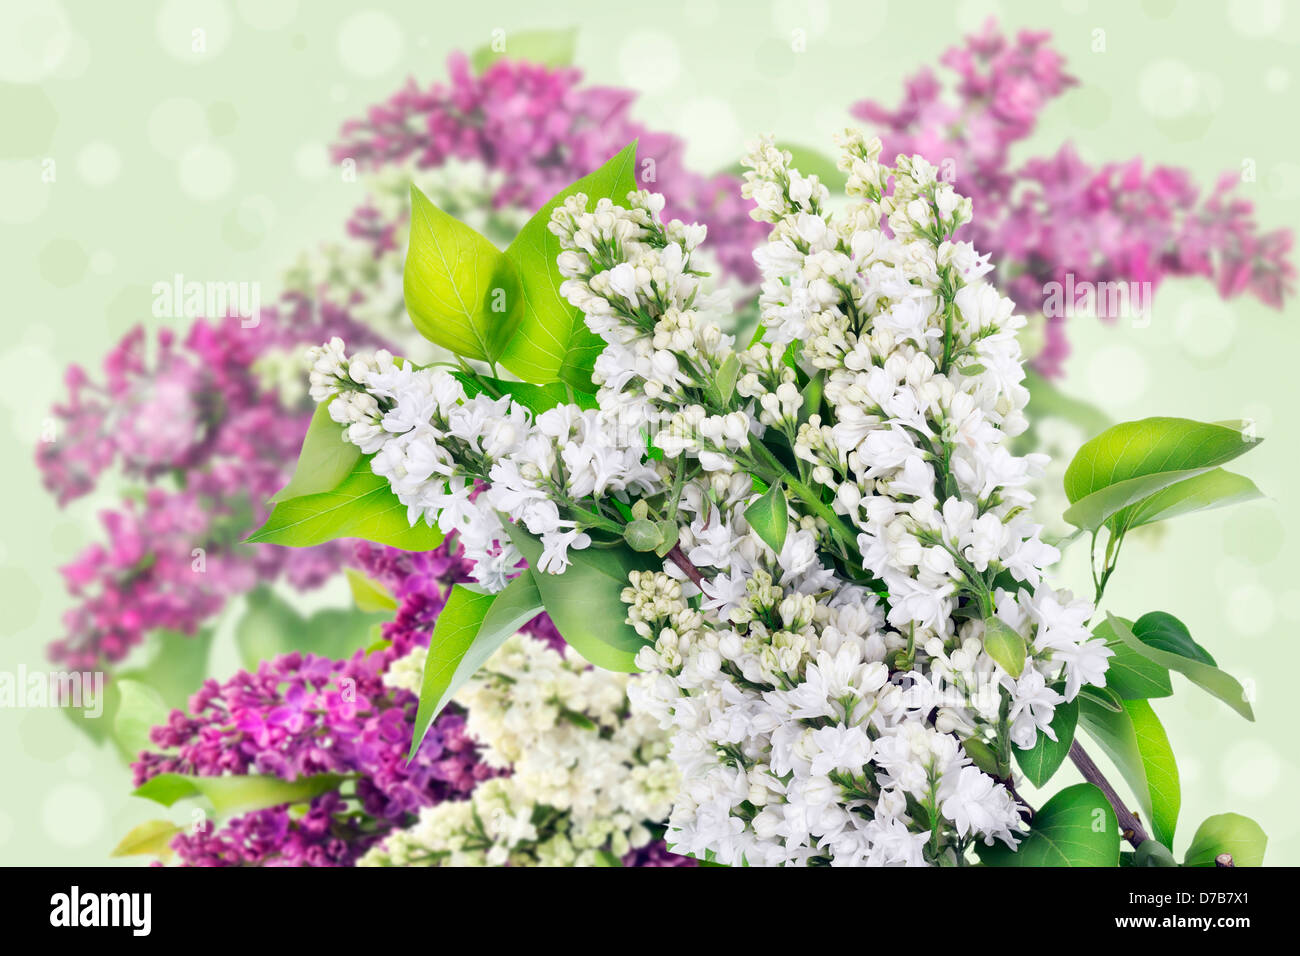 White and purple lilac branches with flowers and leaves abstract collage background. Selective art focus. - Stock Image